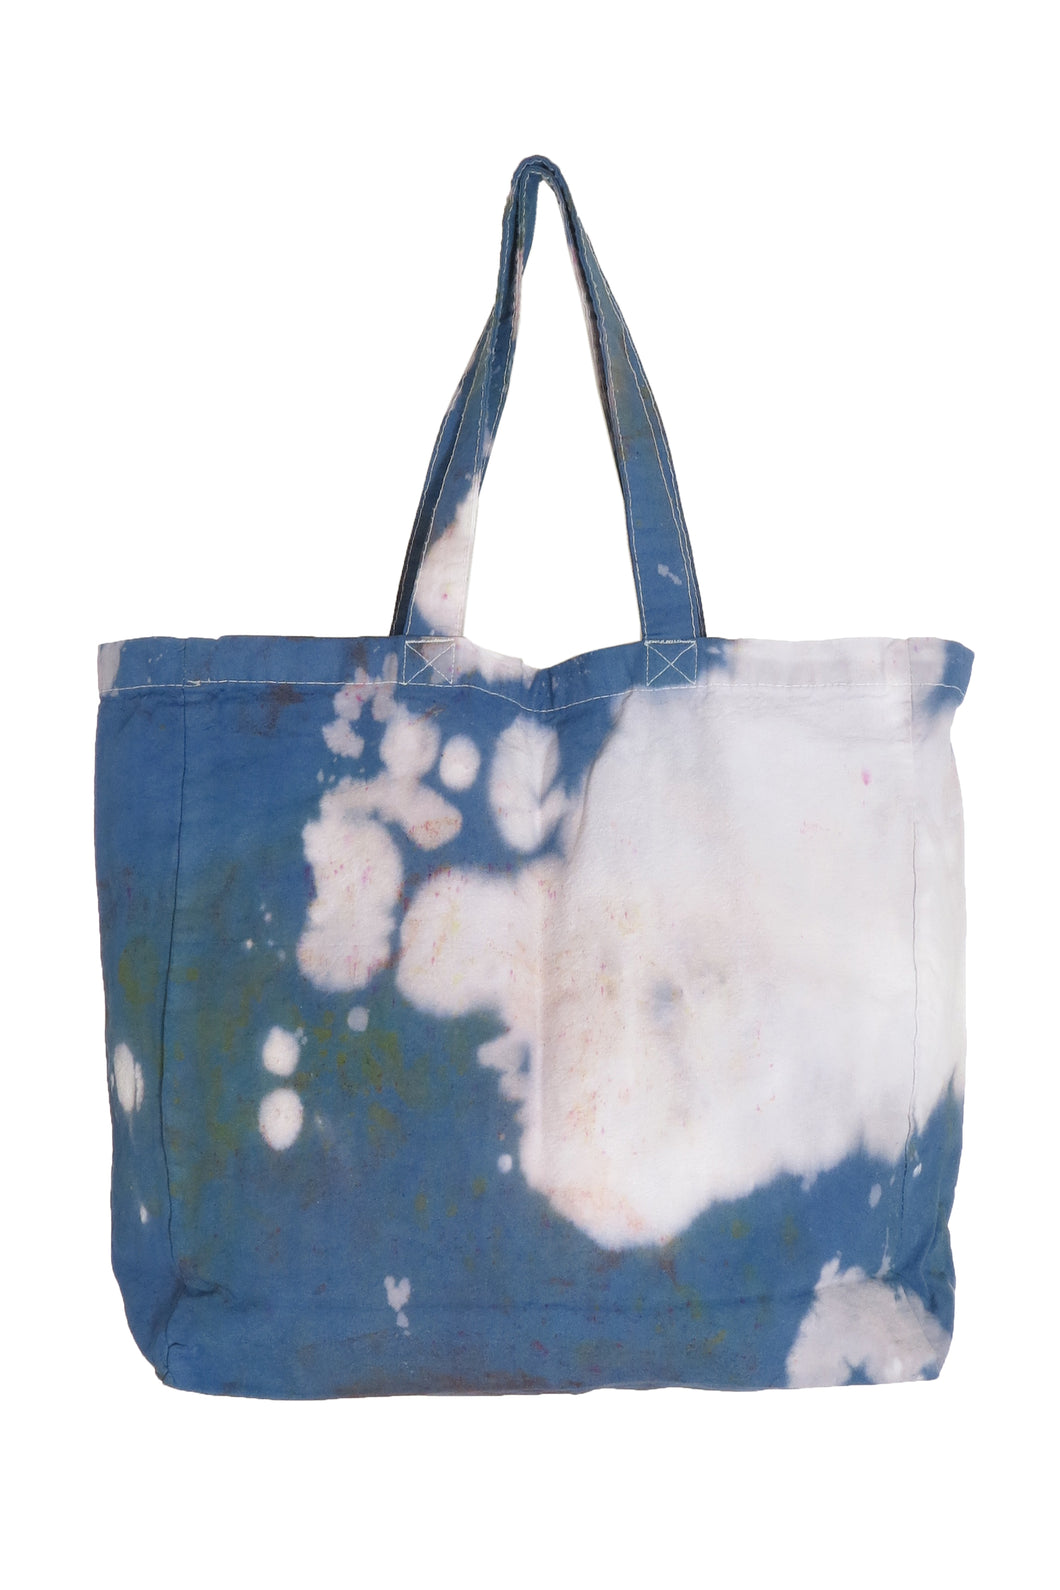 A&C SHOPPER BLUE&WHITE No.1